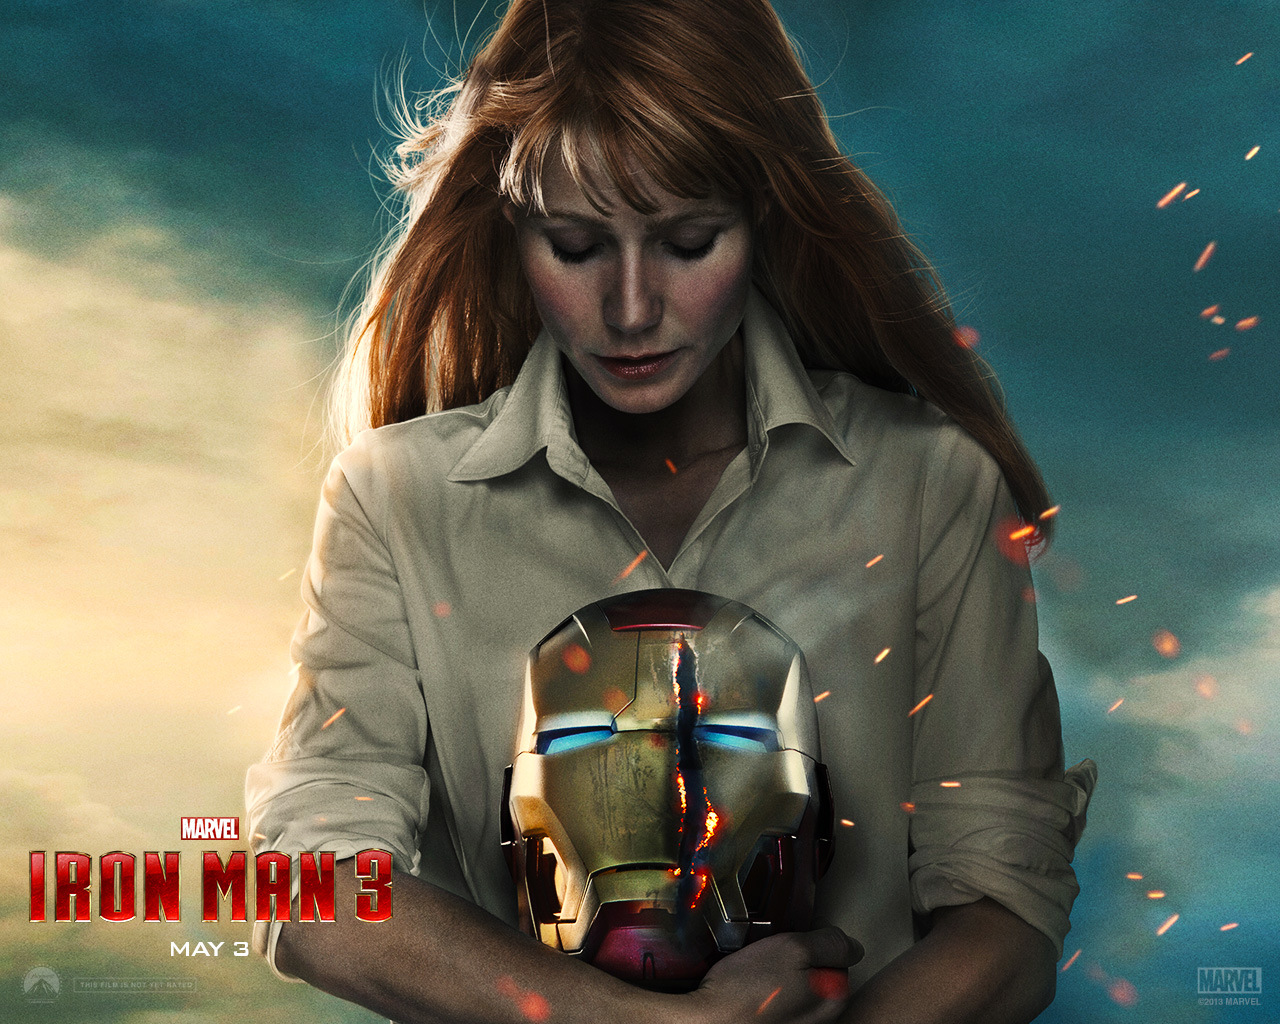 Iron Man 3 wallpaper 1280x1024 008